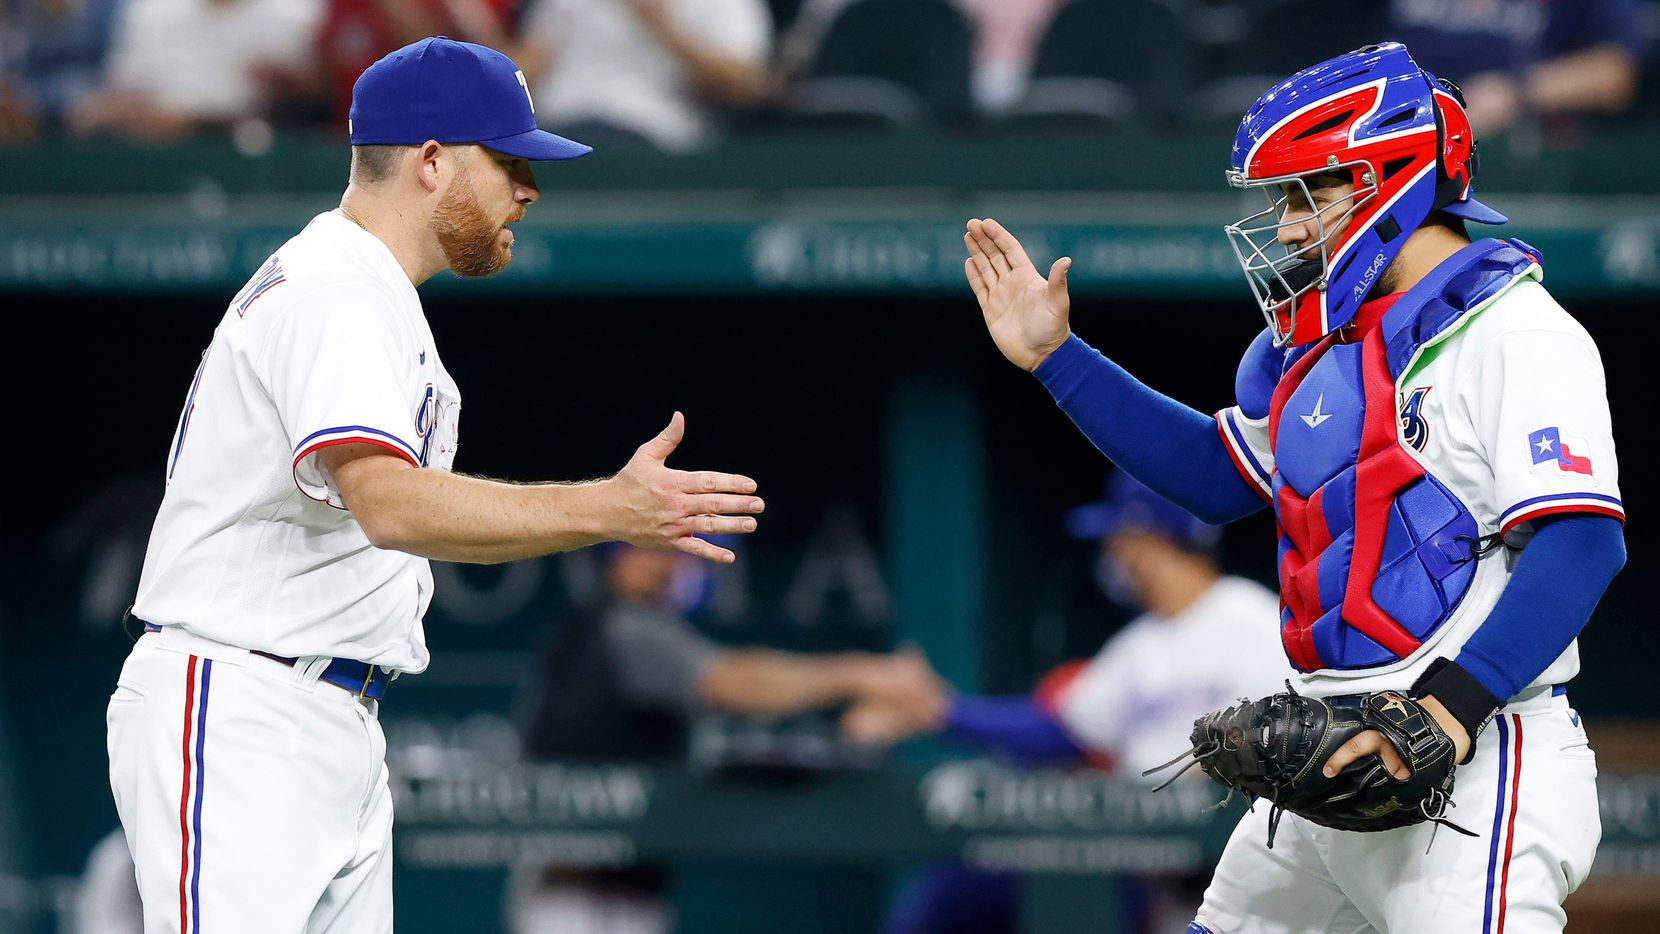 Texas Rangers relief pitcher Ian Kennedy (31) is congratulated by catcher Jose Trevino (23) after striking out the final Boston Red Sox batter in the ninth inning at Globe Life Field in Arlington, Texas, Thursday, April 29, 2021.